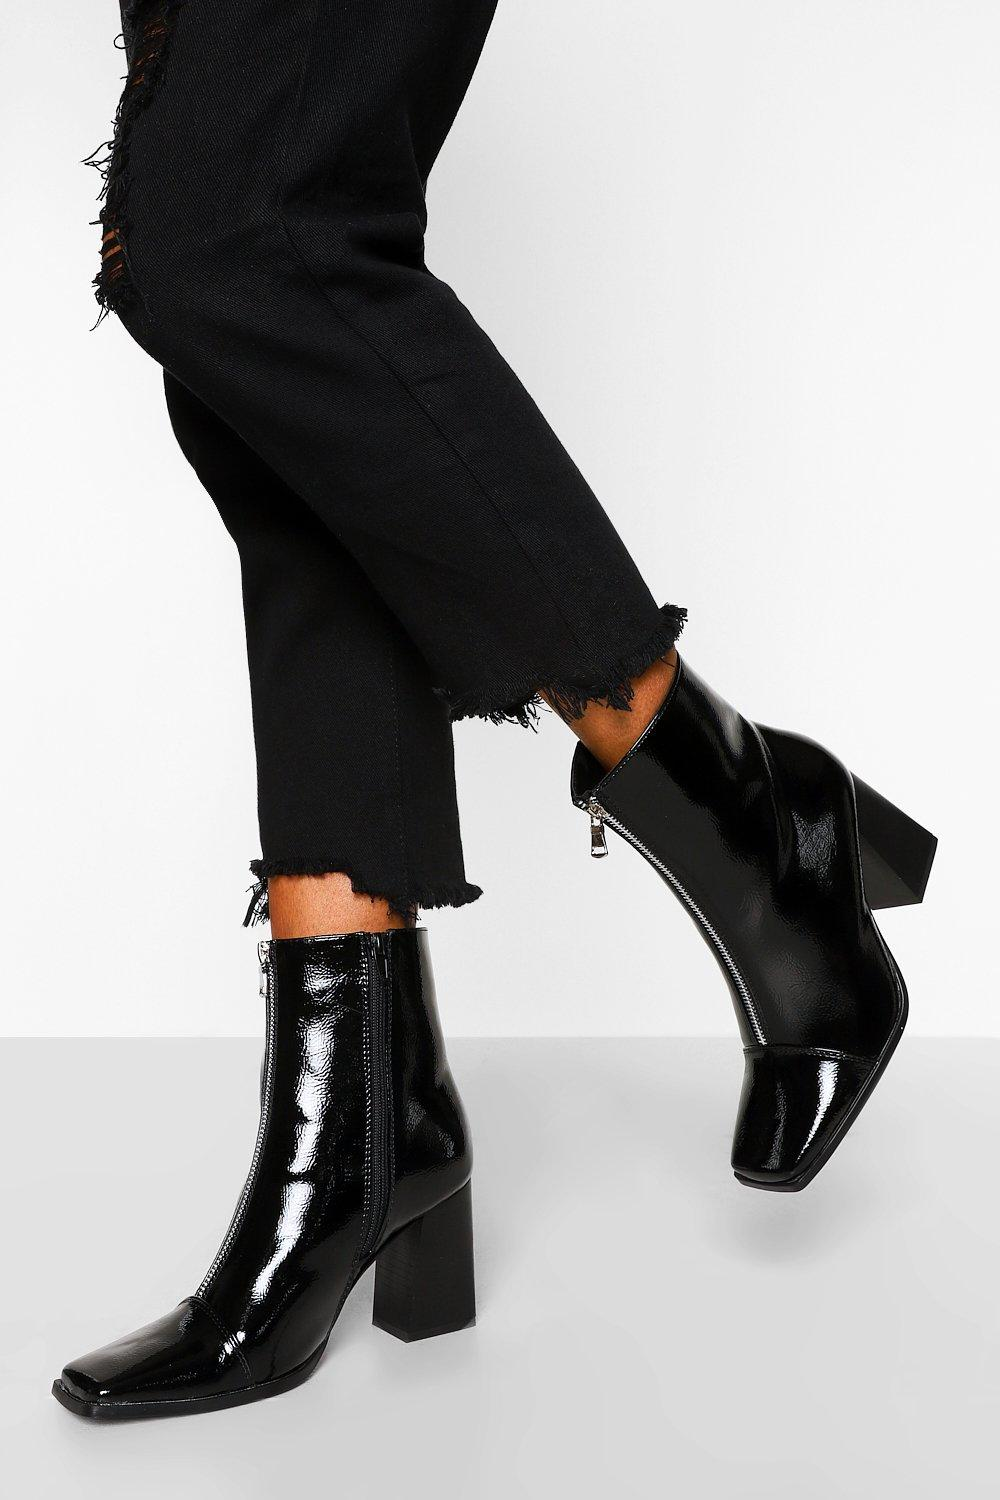 Vintage Boots, Retro Boots Womens Zip Front Square Toe Shoe Boot - Black - 10 $23.20 AT vintagedancer.com